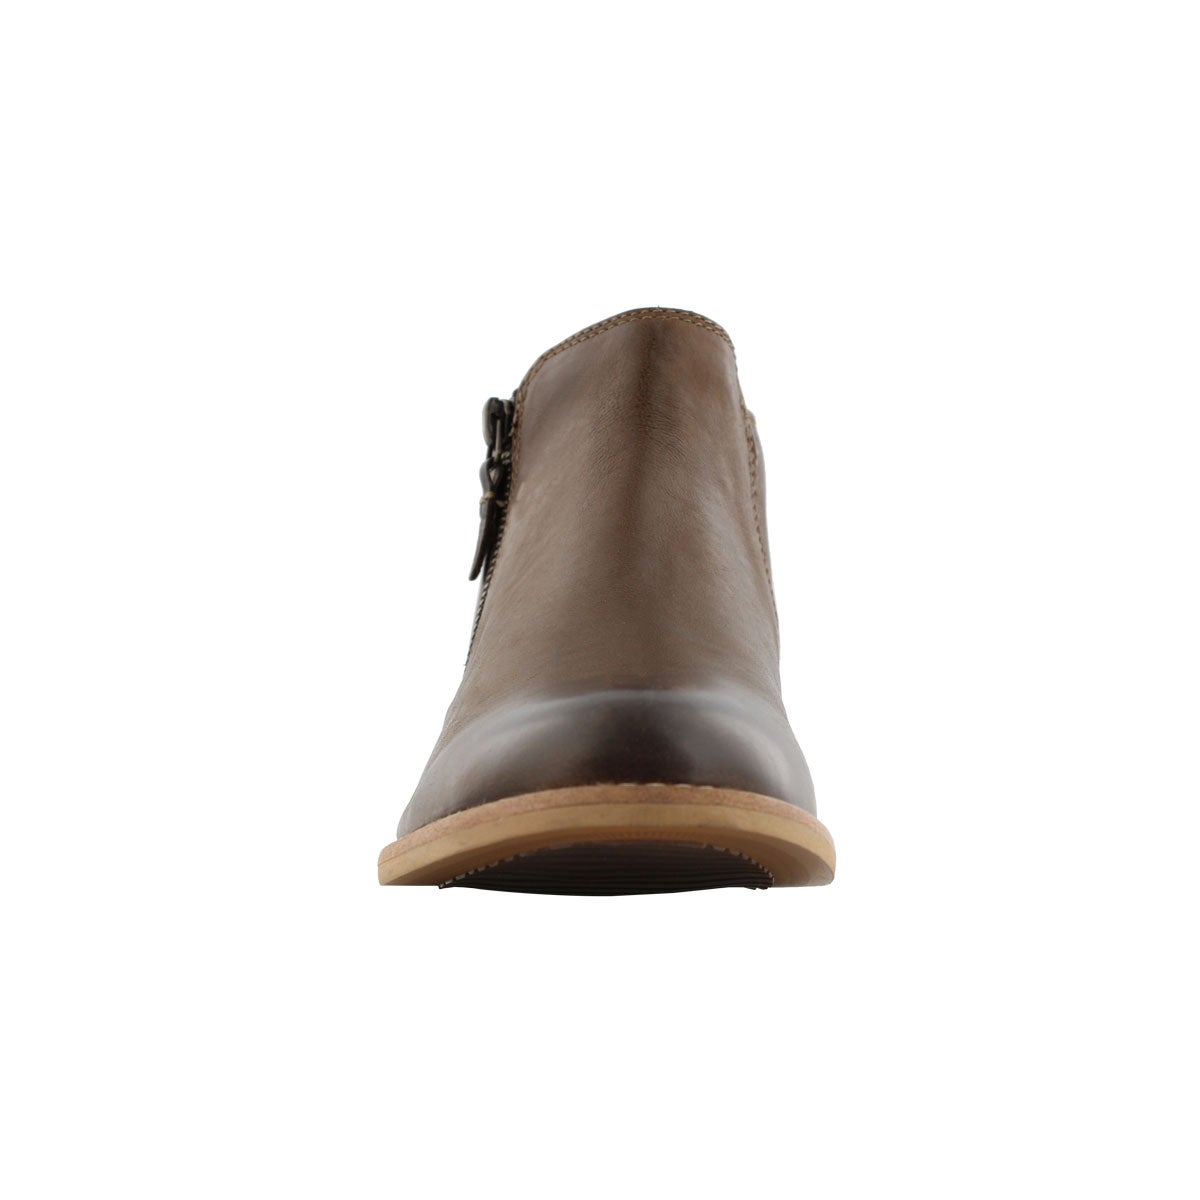 Lds Maypearl Juno brown lthr ankle boot